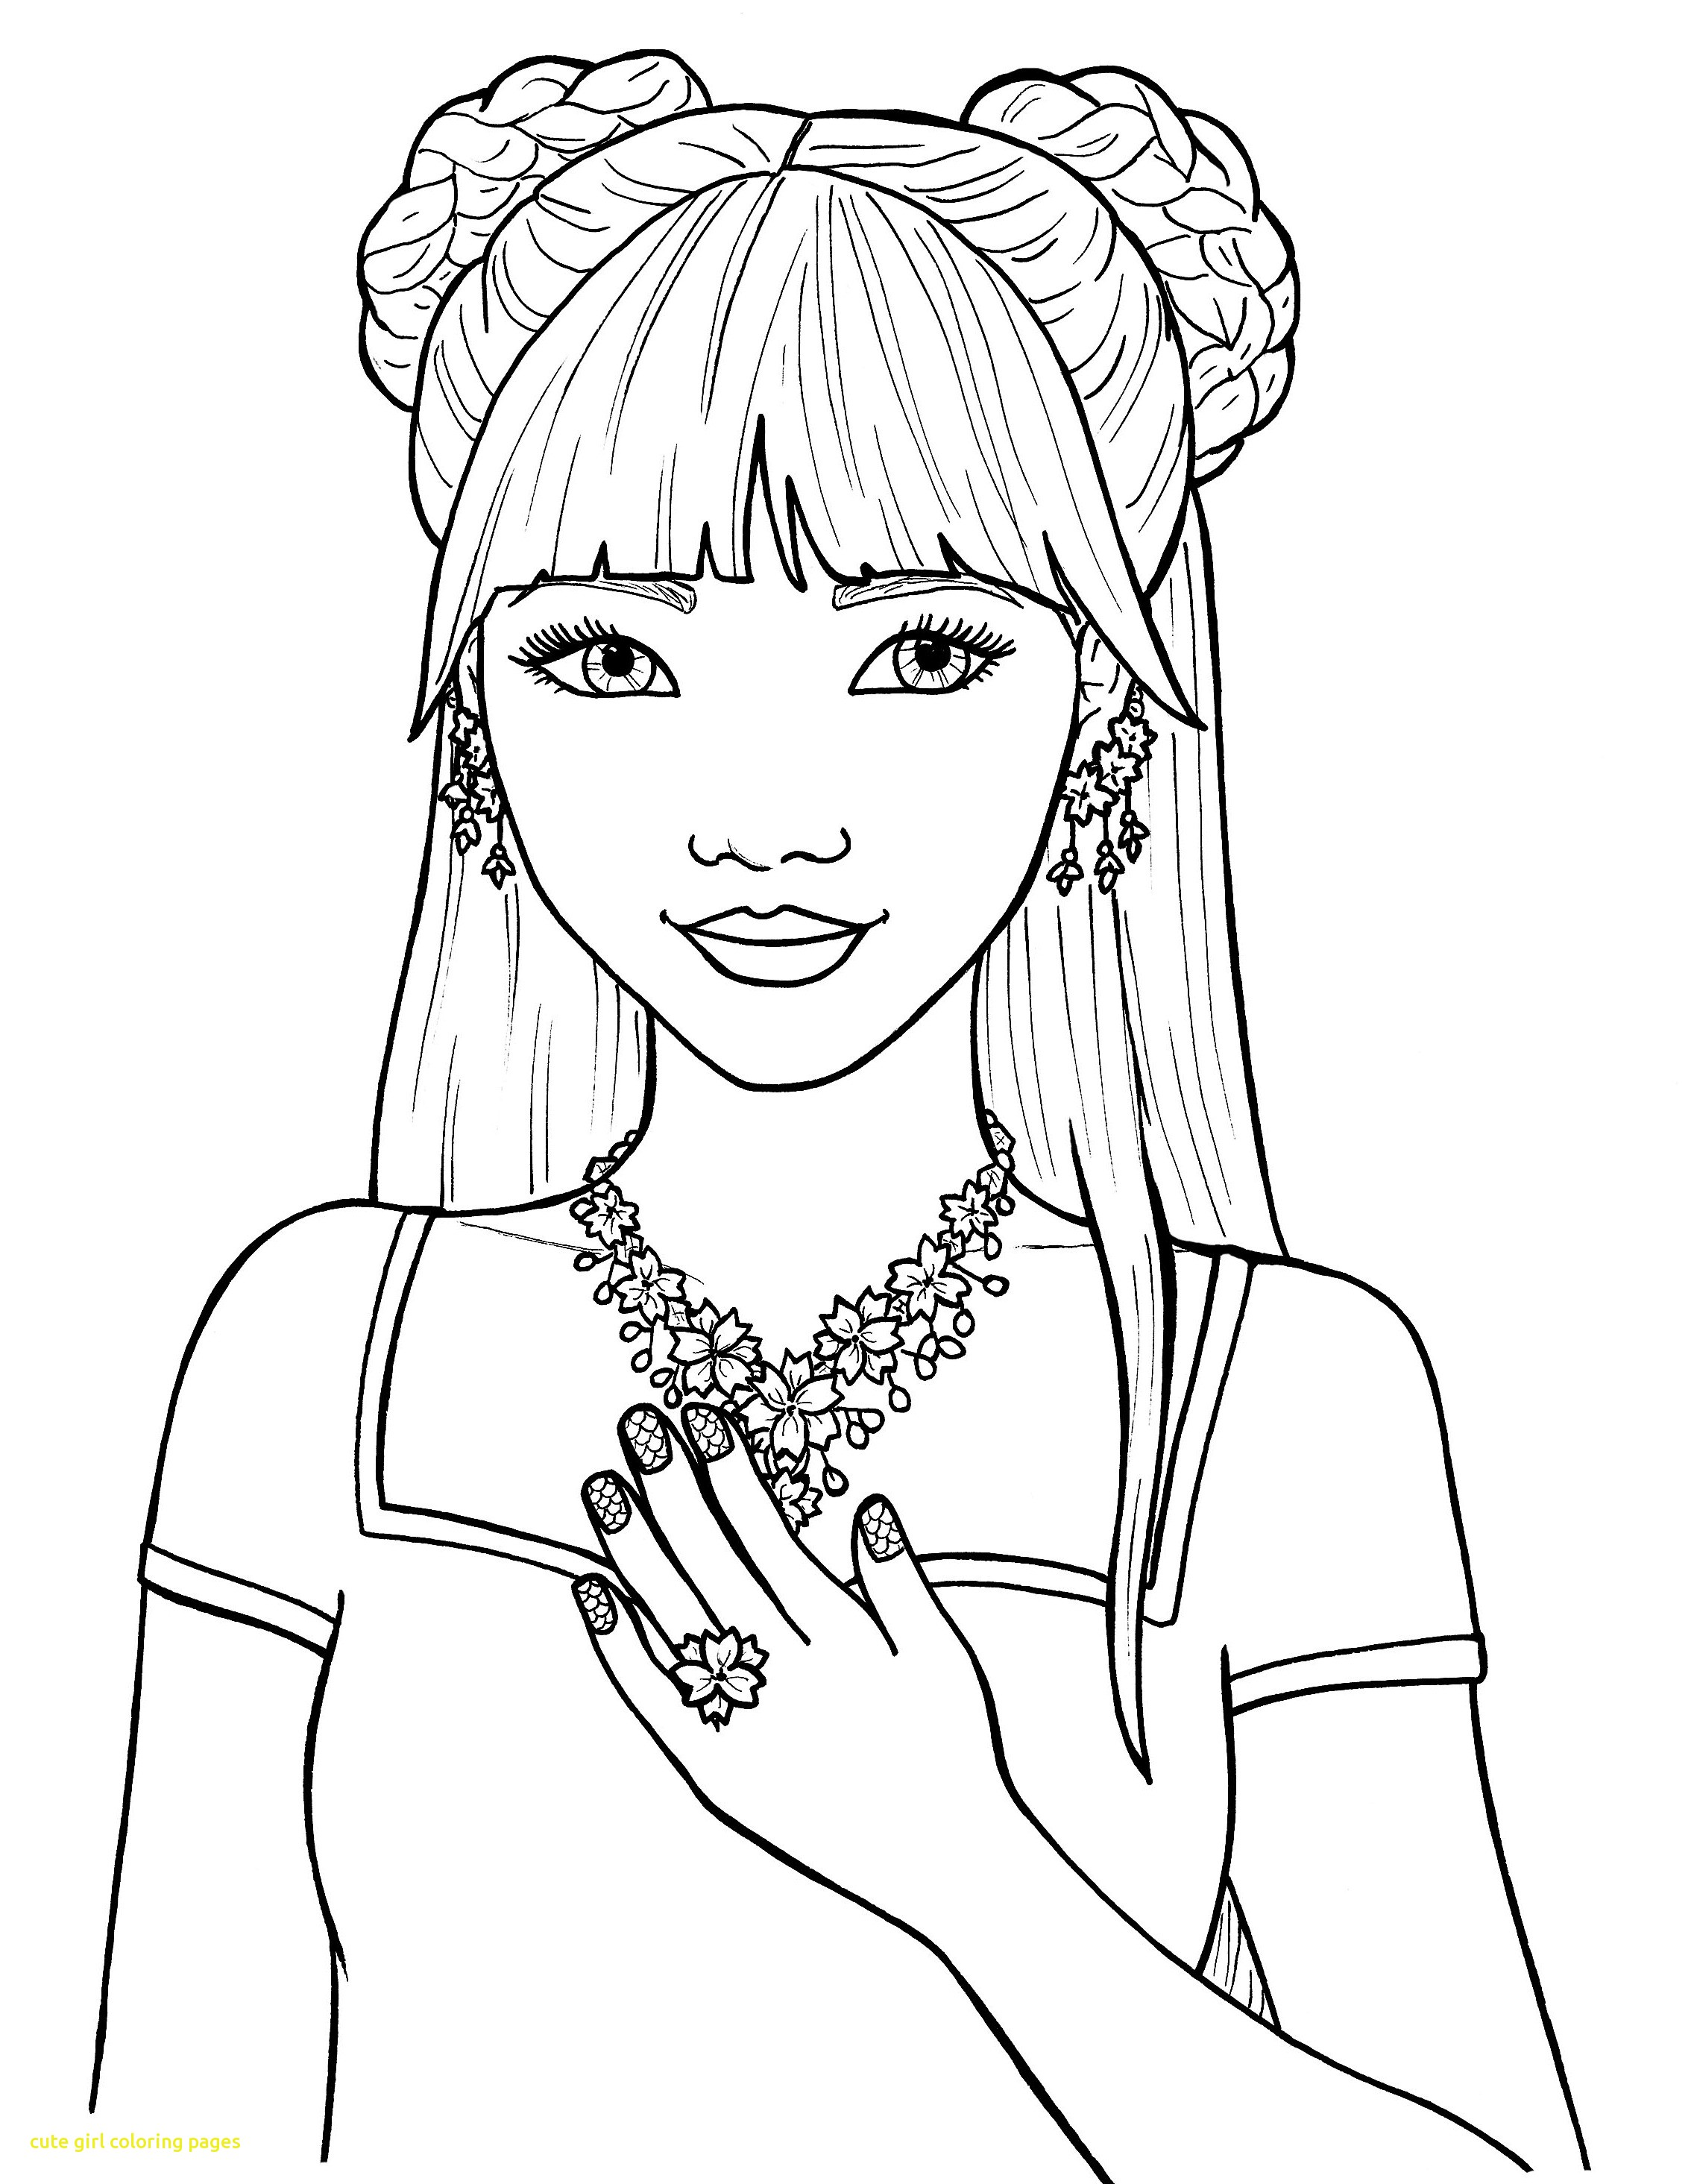 girl coloring pages coloring pages for girls best coloring pages for kids coloring pages girl